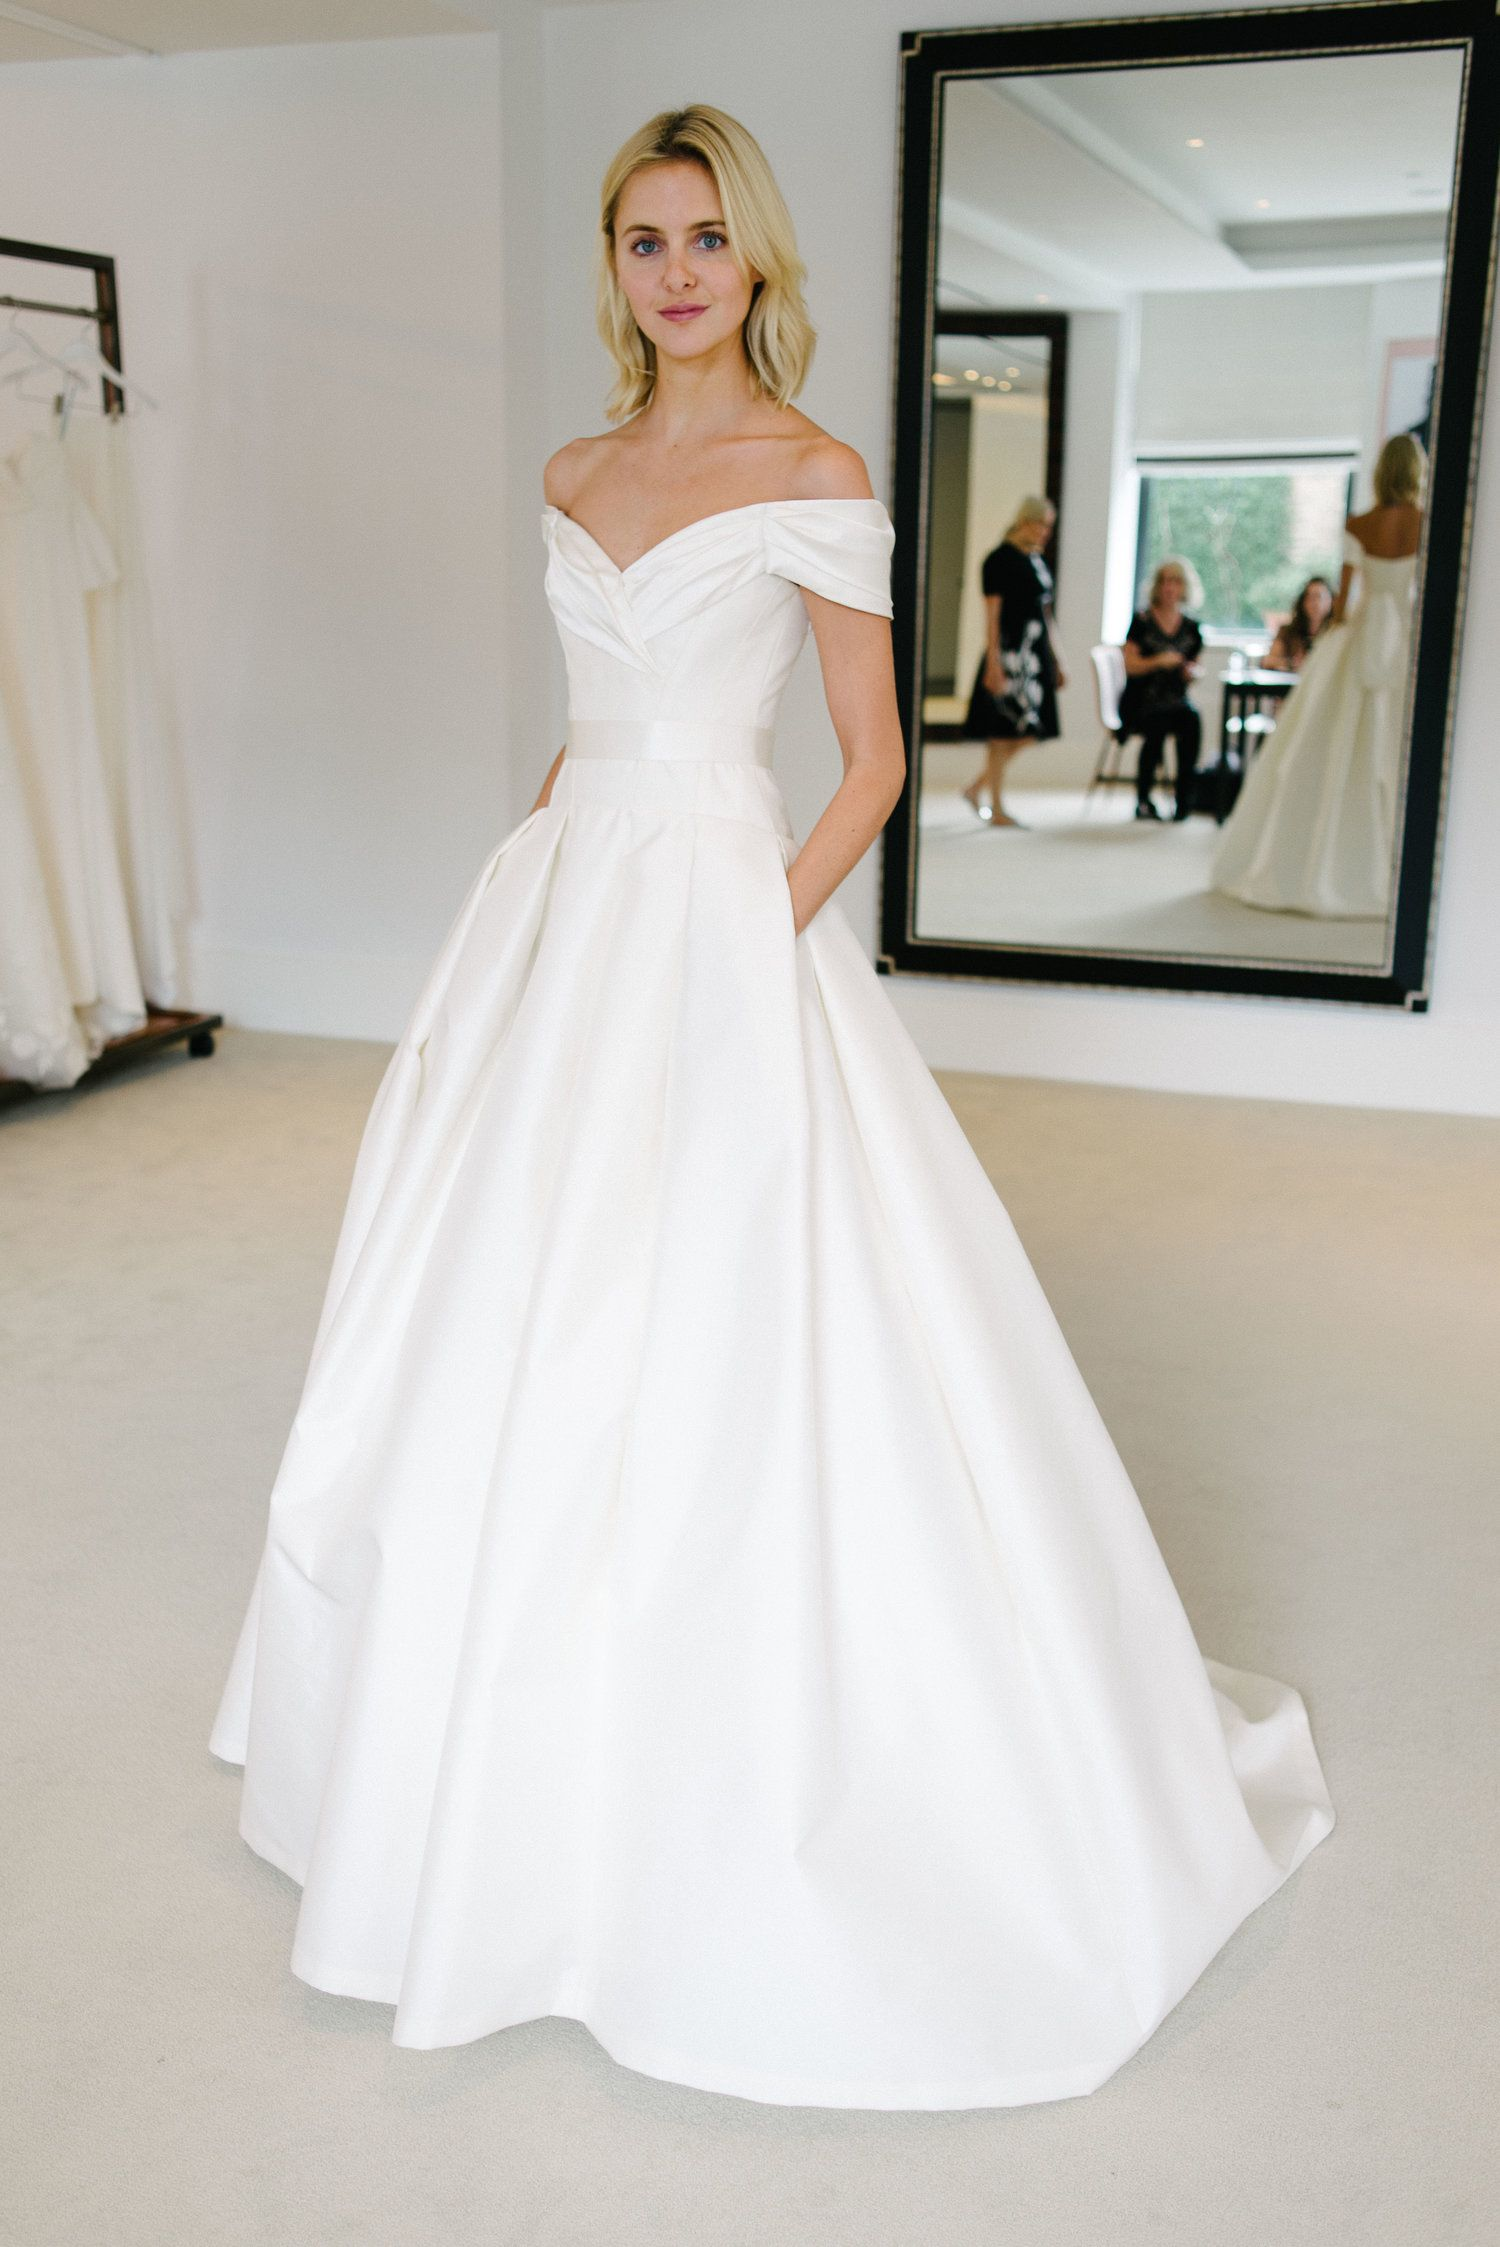 Behind The Scenes With The New Carolina Herrera Collection Little White Dress Bridal Shop Denver Colorado S Best Designer Wedding Dresses And Accessories Wedding Dress Brands Designer Wedding Dresses White Bridal Dresses